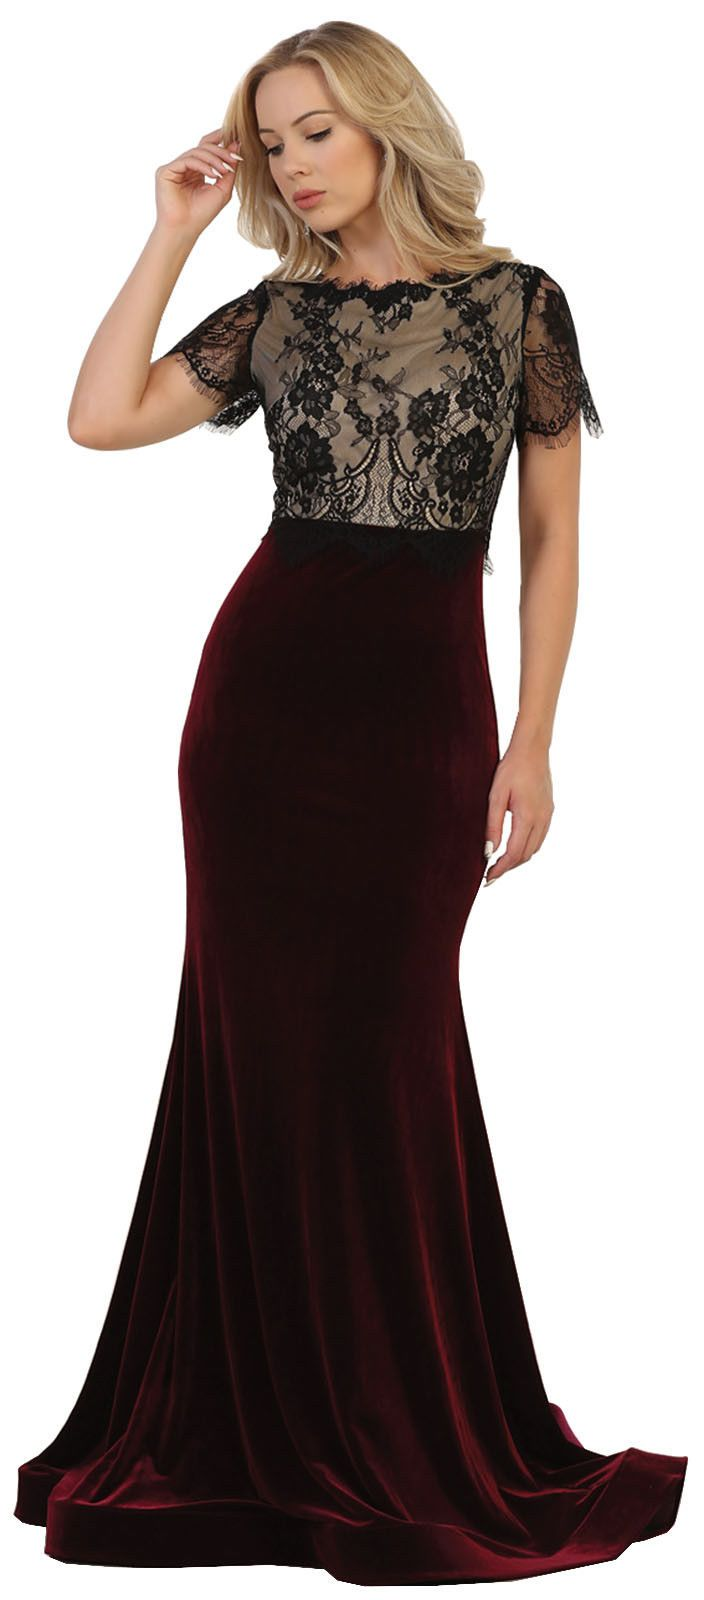 Cool amazing short sleeve prom dance party dresses fitted formal